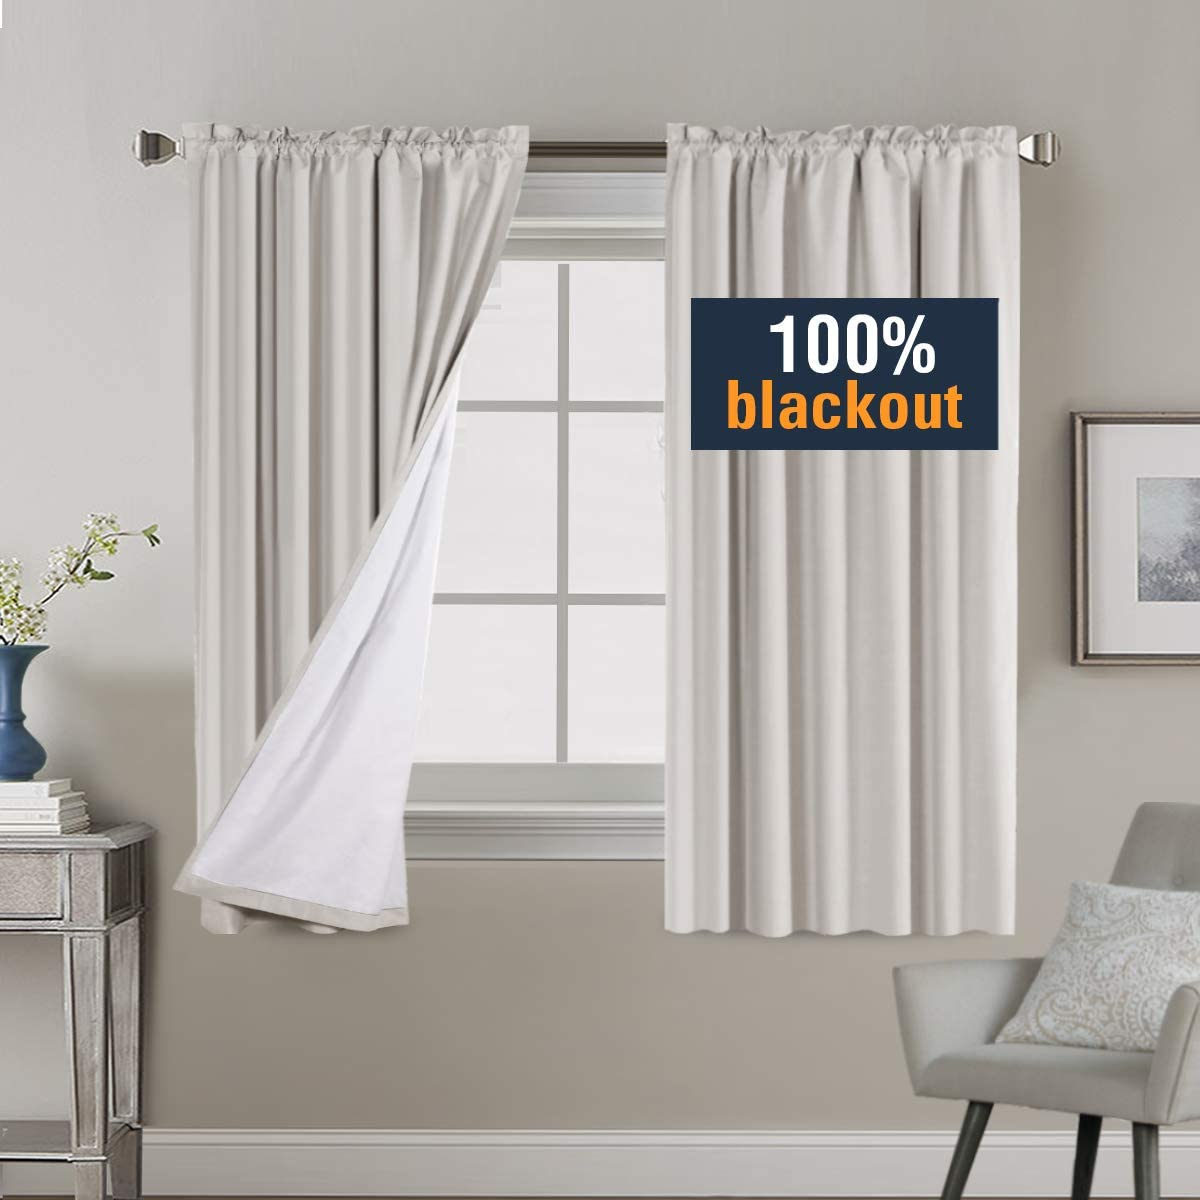 Waterproof Thermal Insulated Rod Pocket Cotton Finishing Curtains 100/% Blackout Grey Curtains for Bedroom 63 inch Long 2 Bonus Tie-Backs Window Curtains Panels for Kids Room 2 Panels